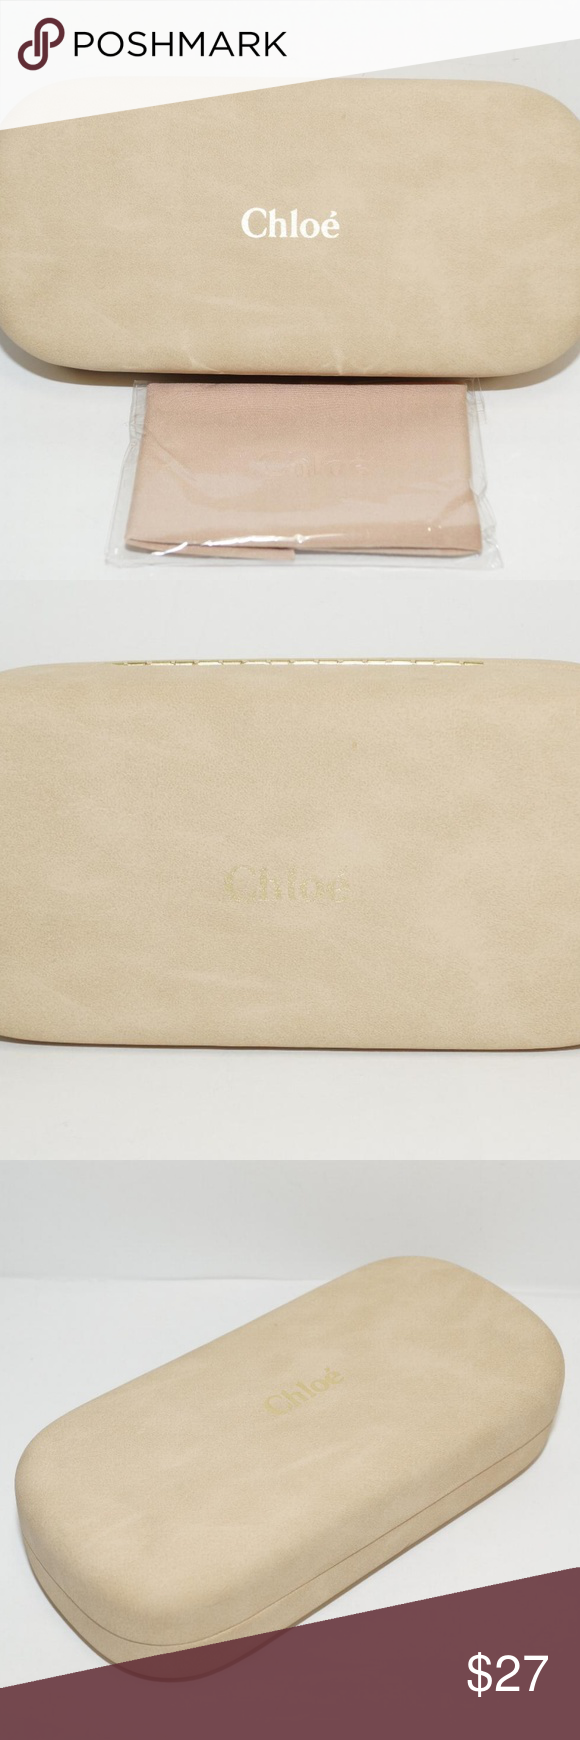 d8daf82540d0 ... listing on Poshmark  CHLOE BEIGE SUEDE LEATHER SUNGLASSES GLASSES CASE.   shopmycloset  poshmark  fashion  shopping  style  forsale  Chloe   Accessories